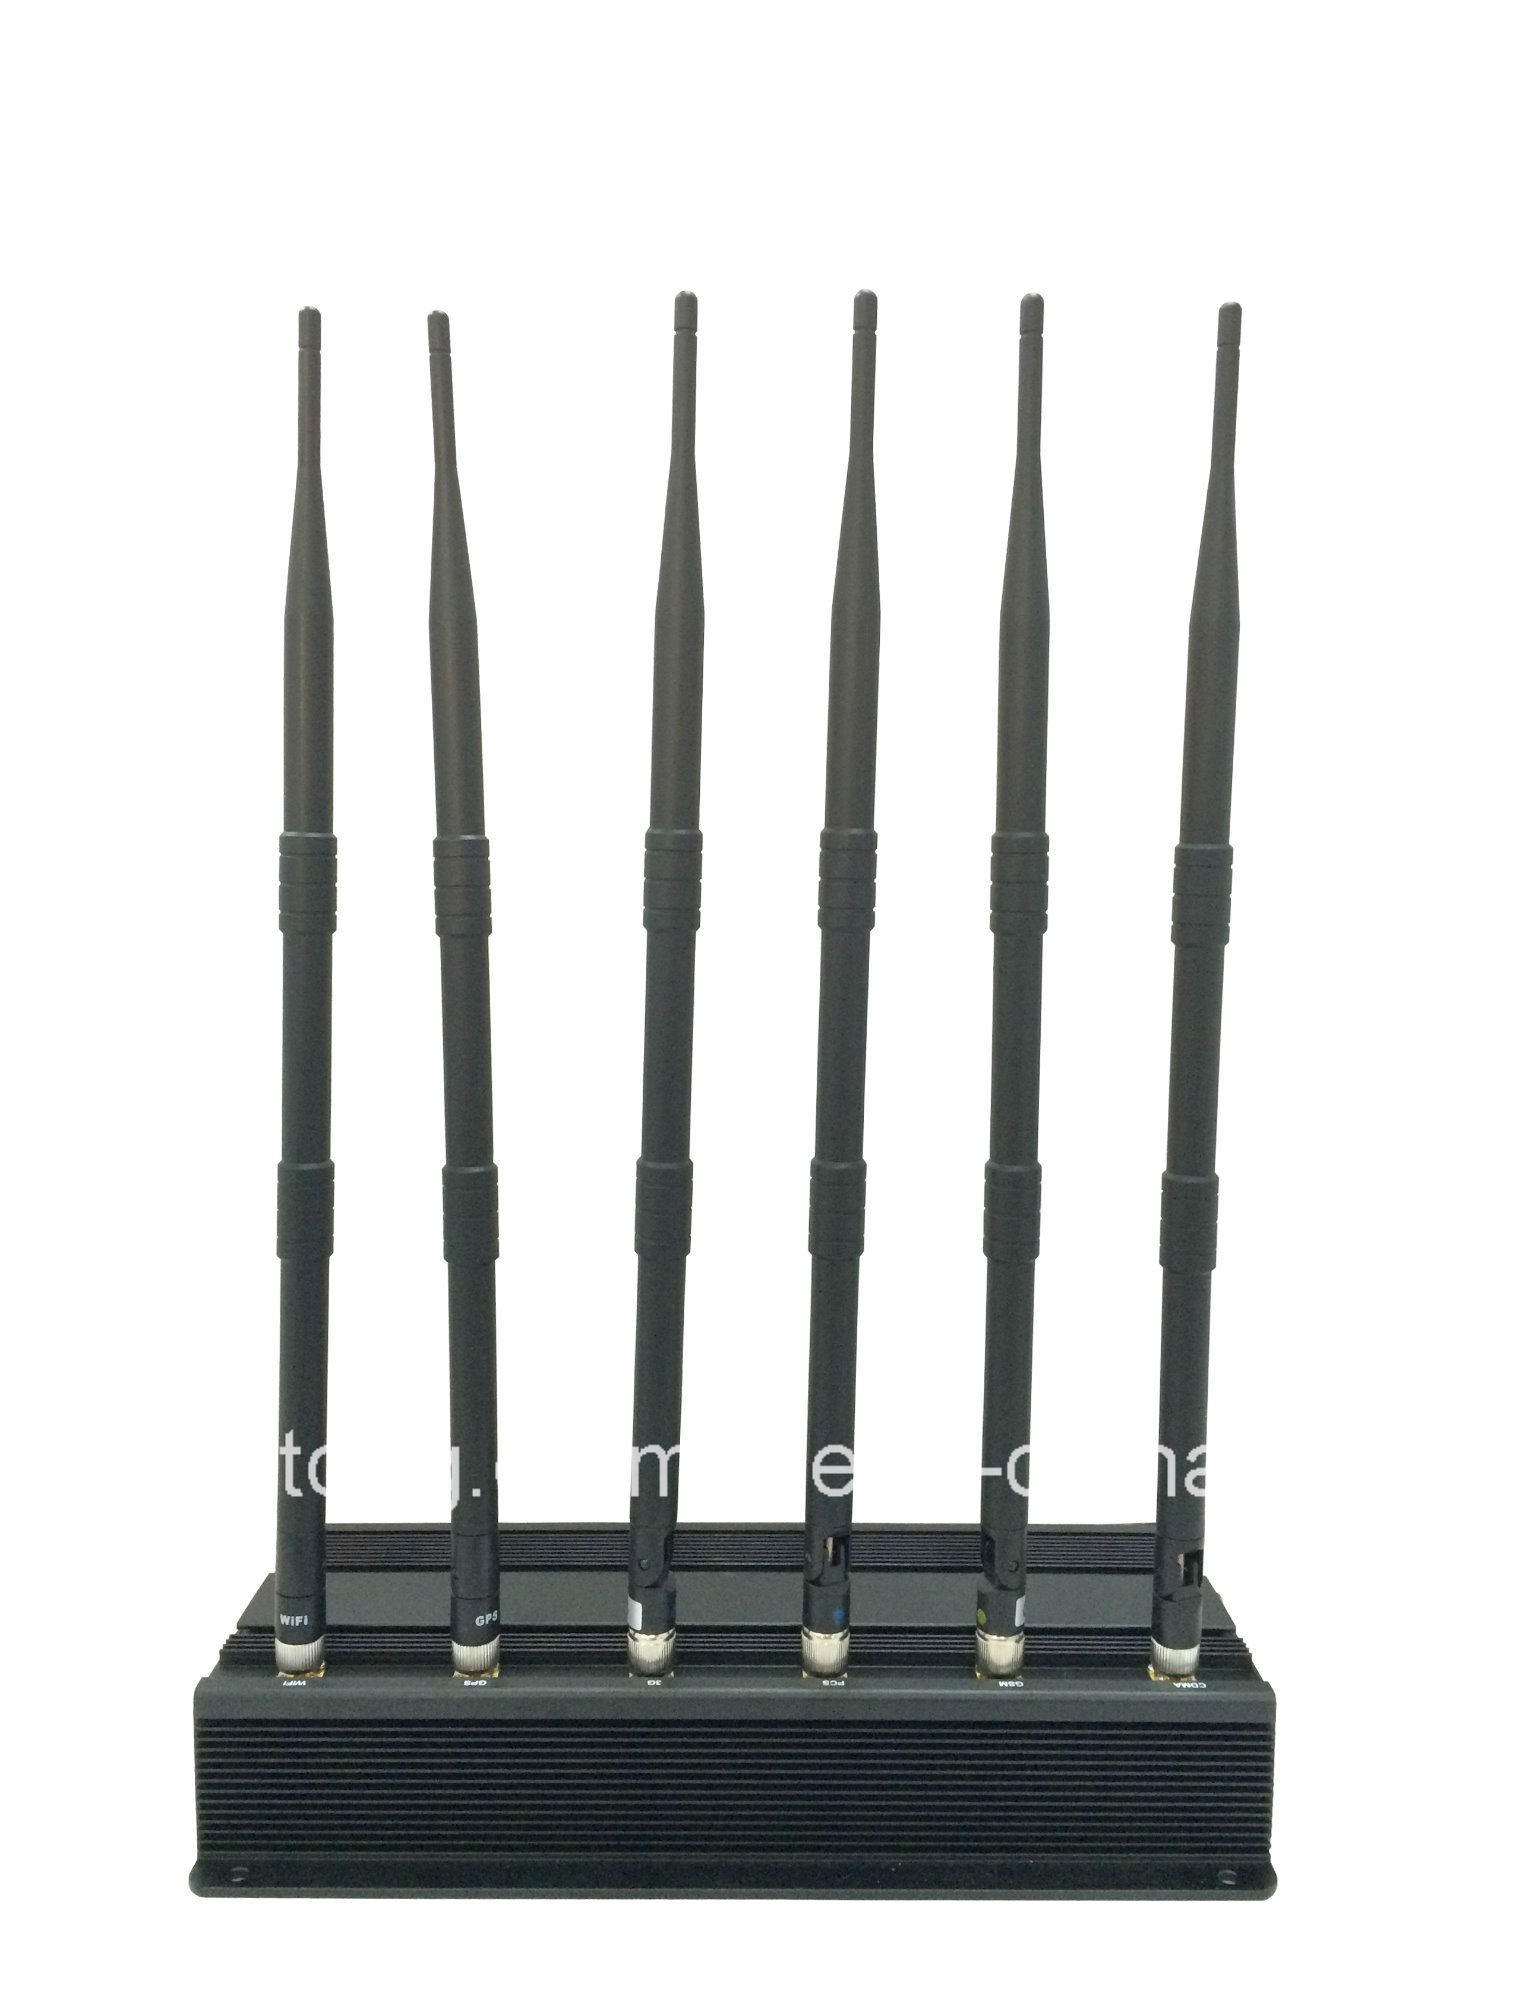 6 Antenna Desktop Cell Phone Jammer for Lojack